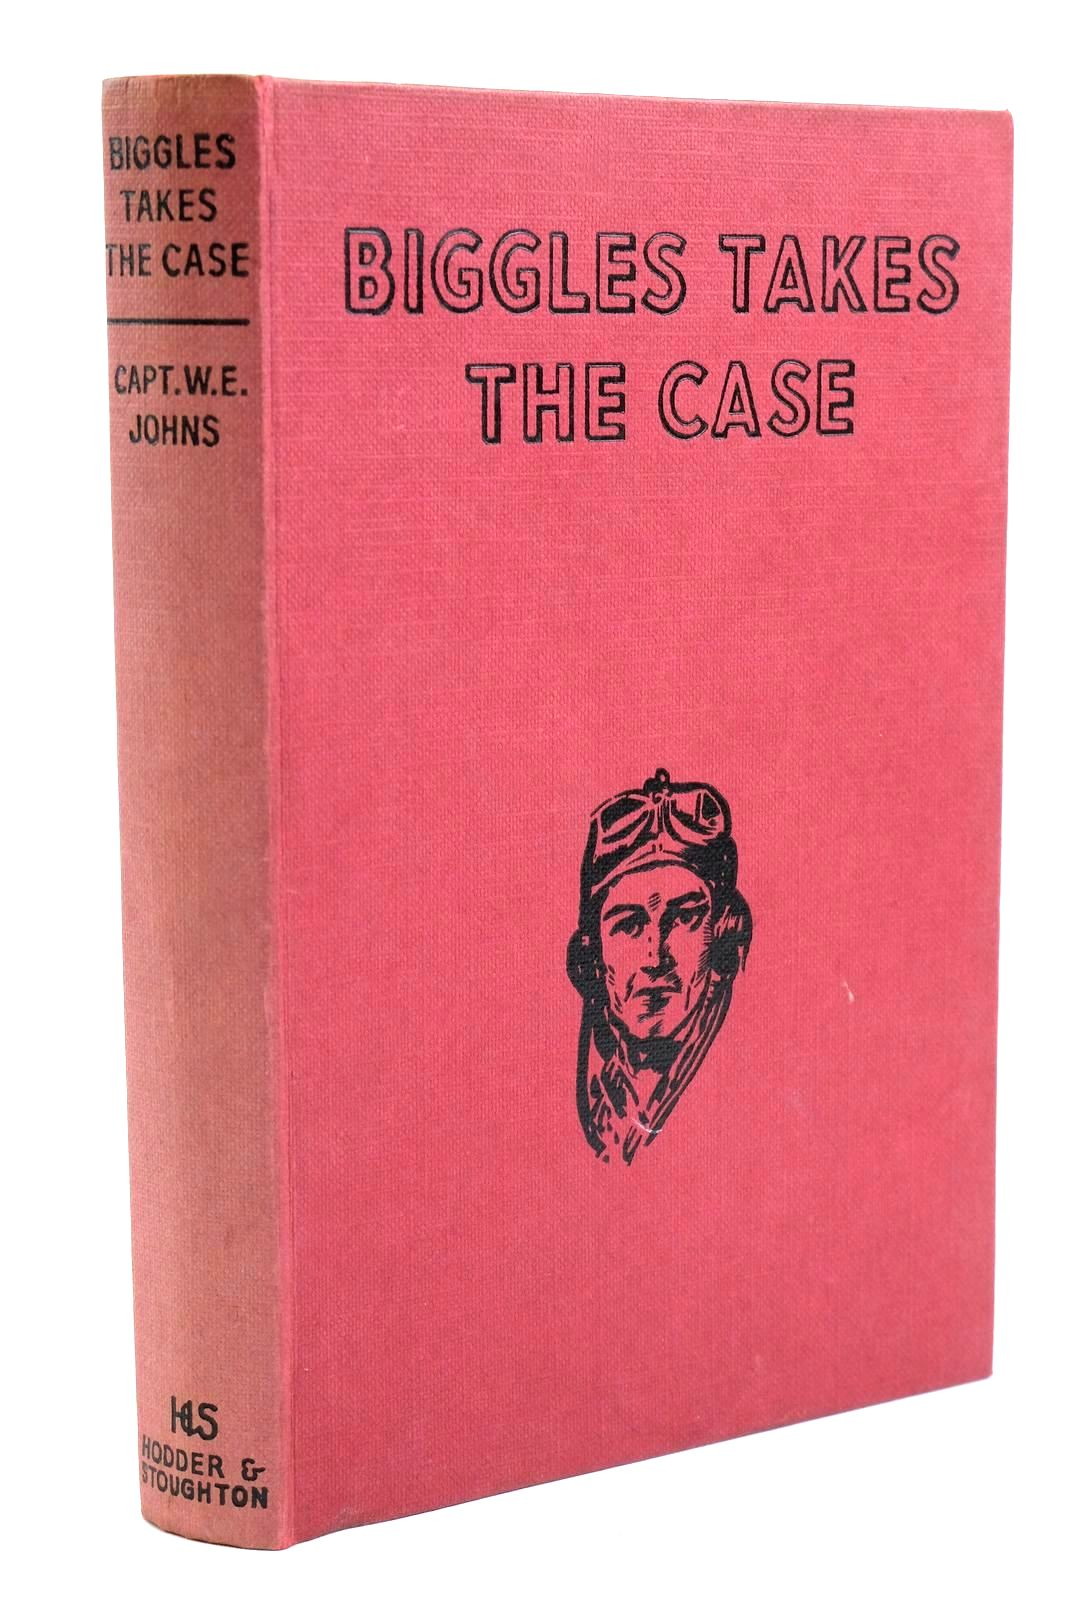 Photo of BIGGLES TAKES THE CASE written by Johns, W.E. illustrated by Stead, Leslie published by Hodder & Stoughton (STOCK CODE: 1320699)  for sale by Stella & Rose's Books